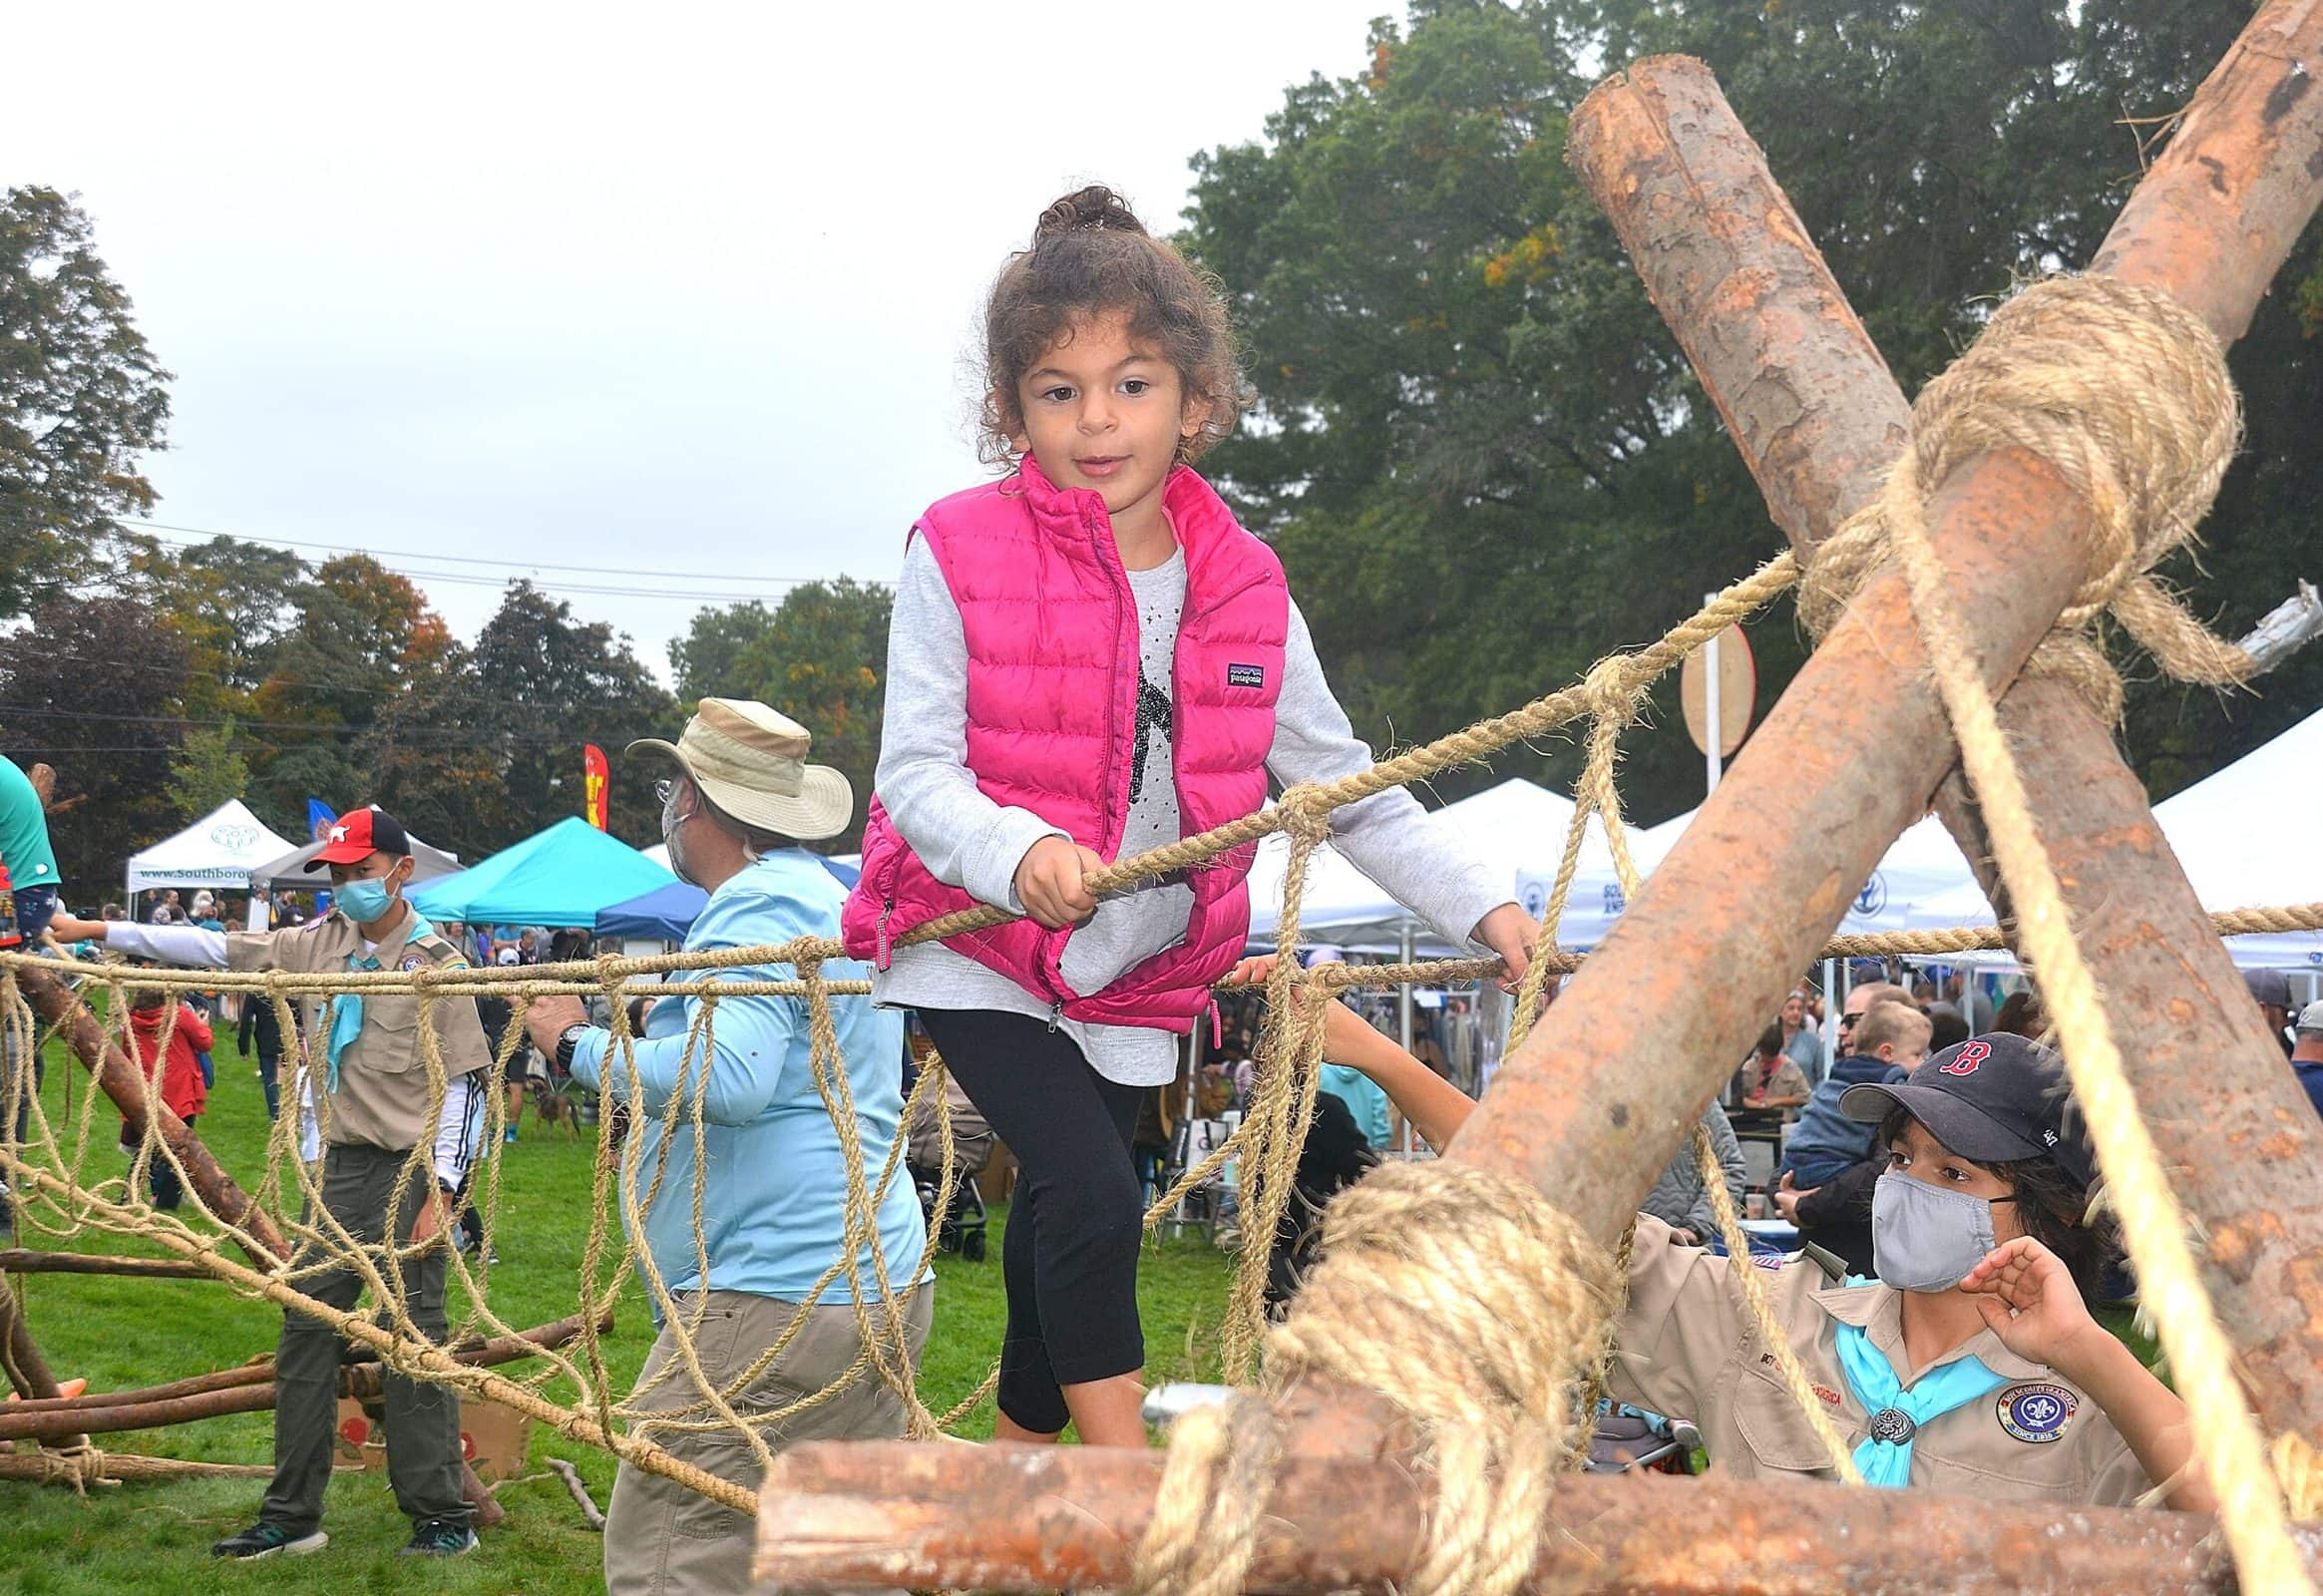 Kiley Werman, 5, reaches the end of the rope bridge provided by Boy Scout Troop 1.